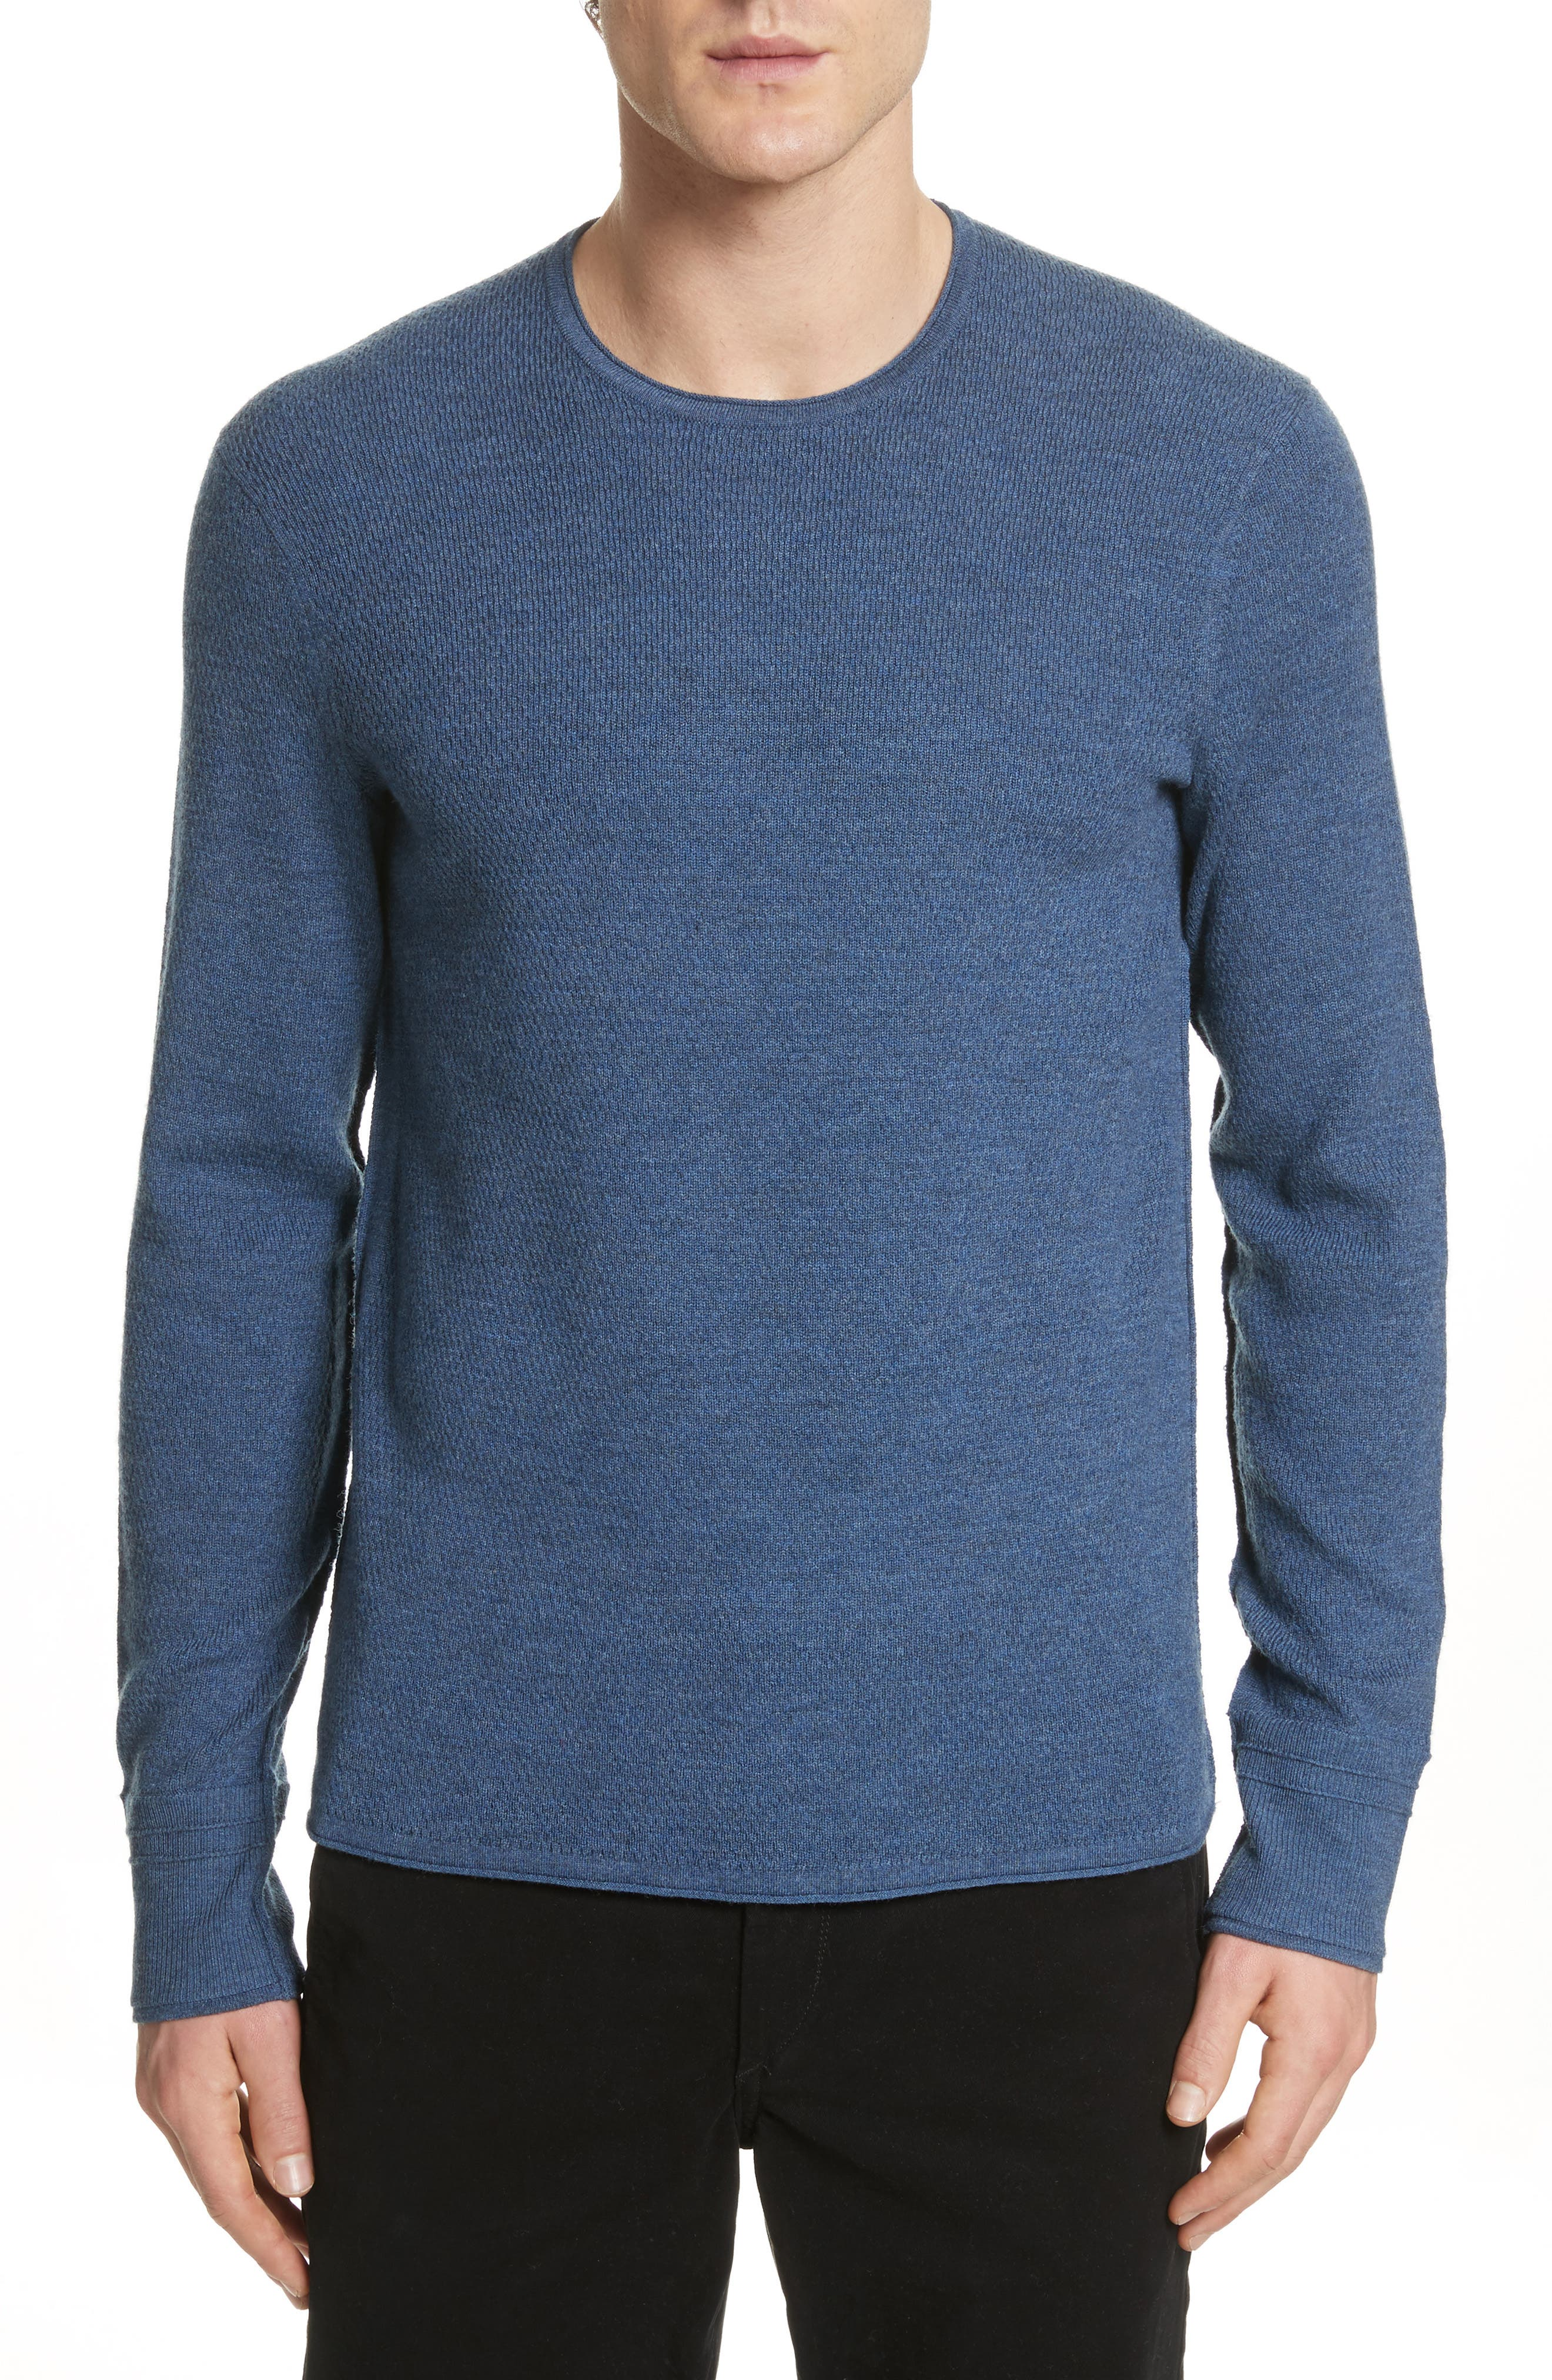 Gregory Merino Wool Blend Crewneck Sweater,                             Main thumbnail 1, color,                             Heather Blue